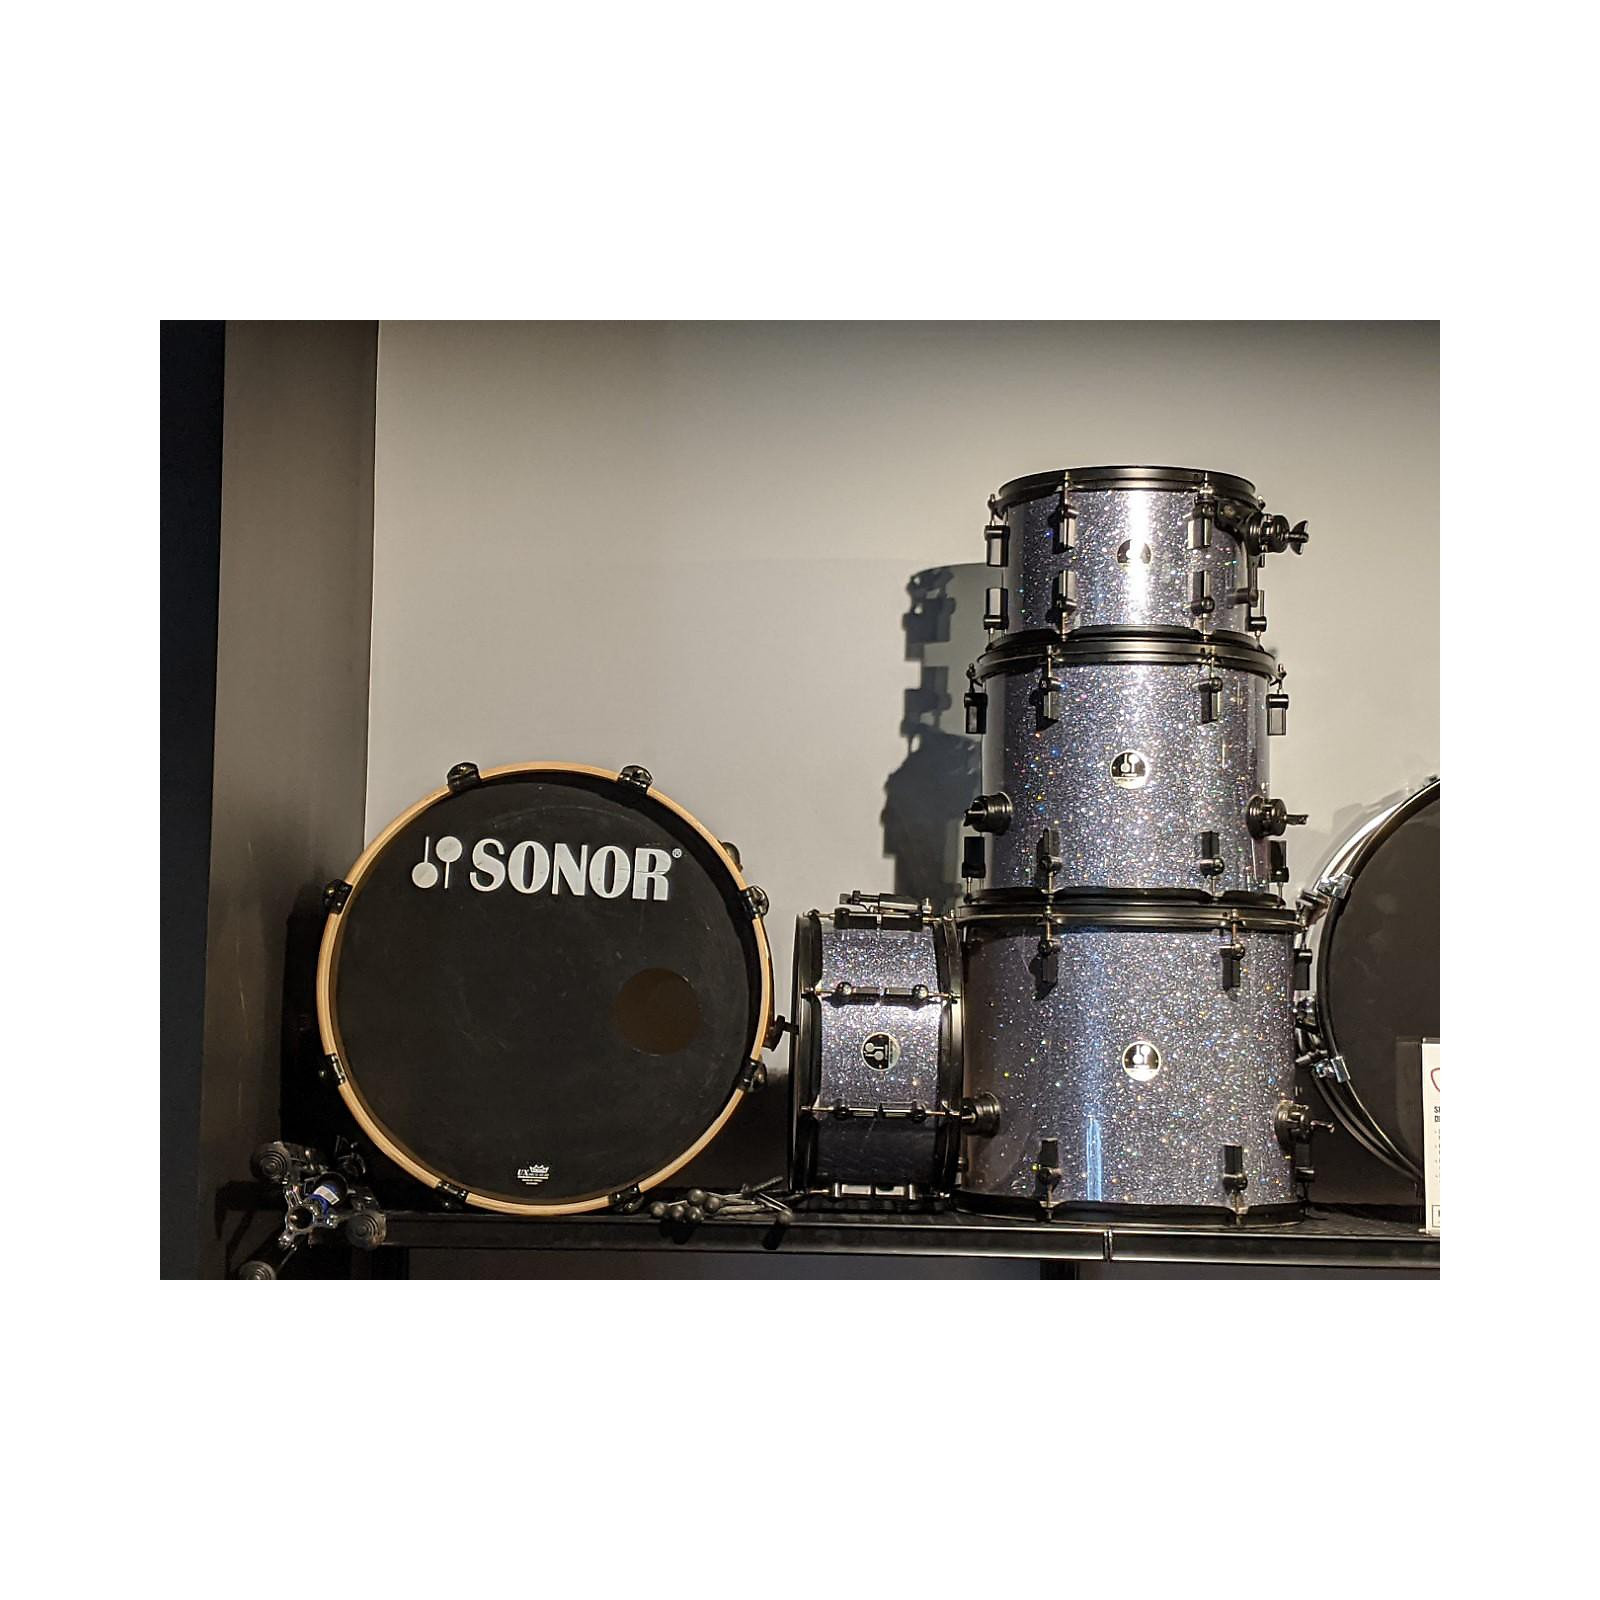 Sonor Special Edition Drum Kit